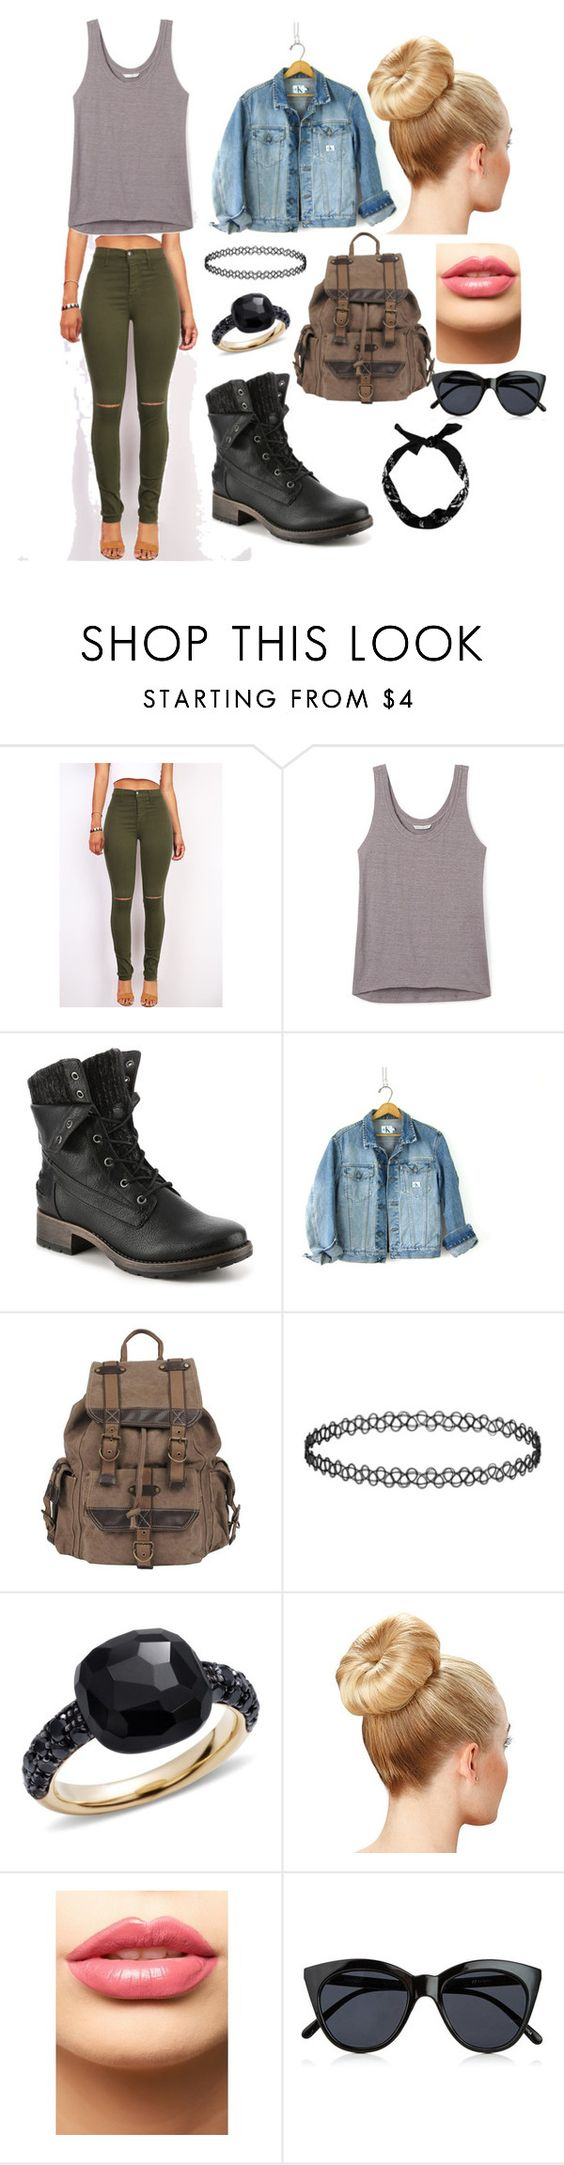 """""""Camp girl 101"""" by pintrestobsessed ❤ liked on Polyvore featuring Rebecca Minkoff, Calvin Klein, Wilsons Leather, Pomellato, LASplash, Le Specs and New Look"""